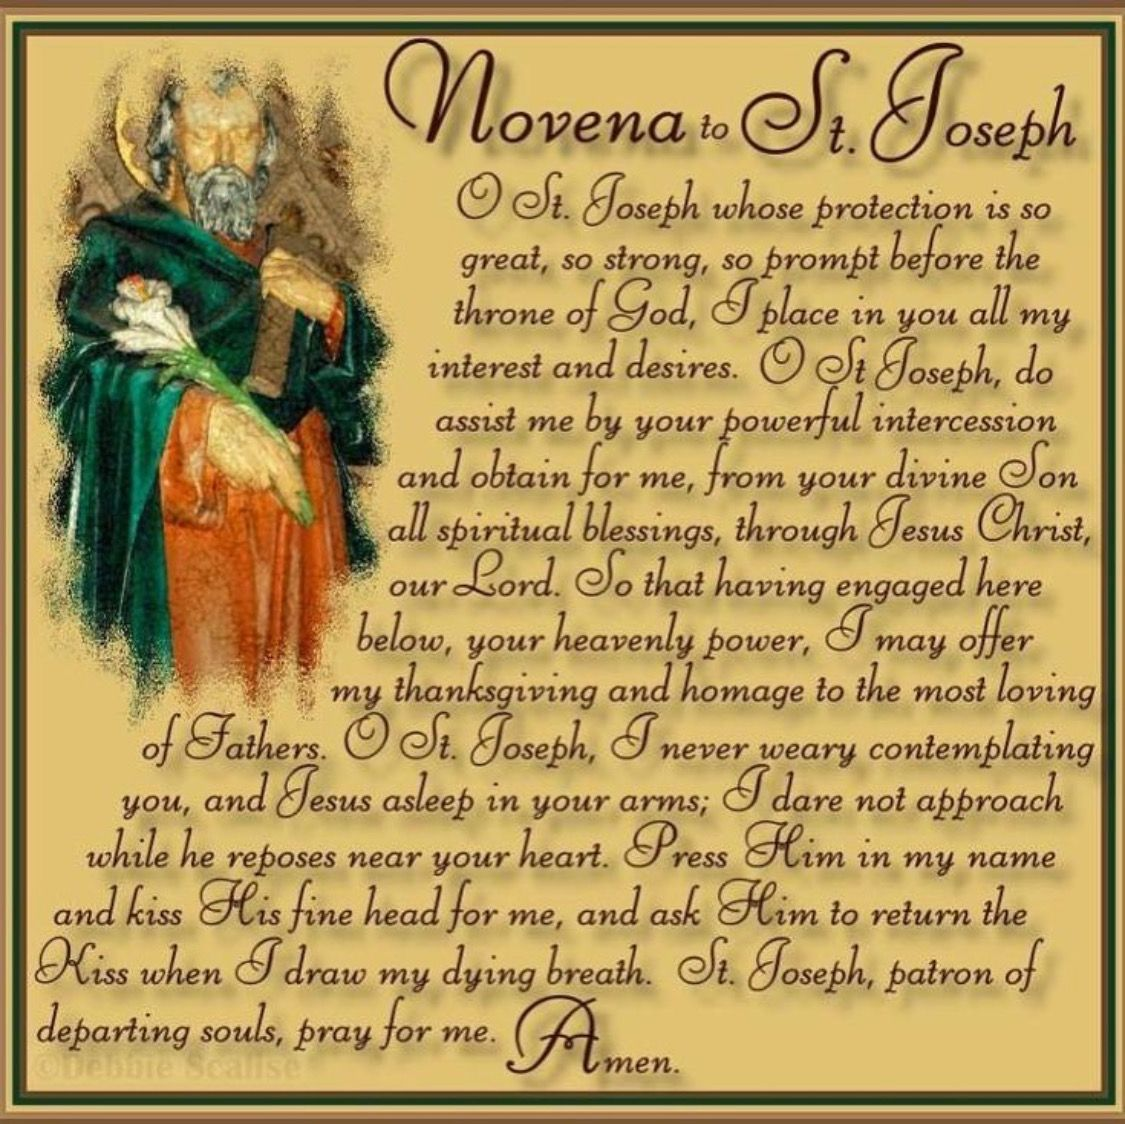 Novena To St Joseph This Is My Absolute Favorite I Memorized It In College And It Is A Very